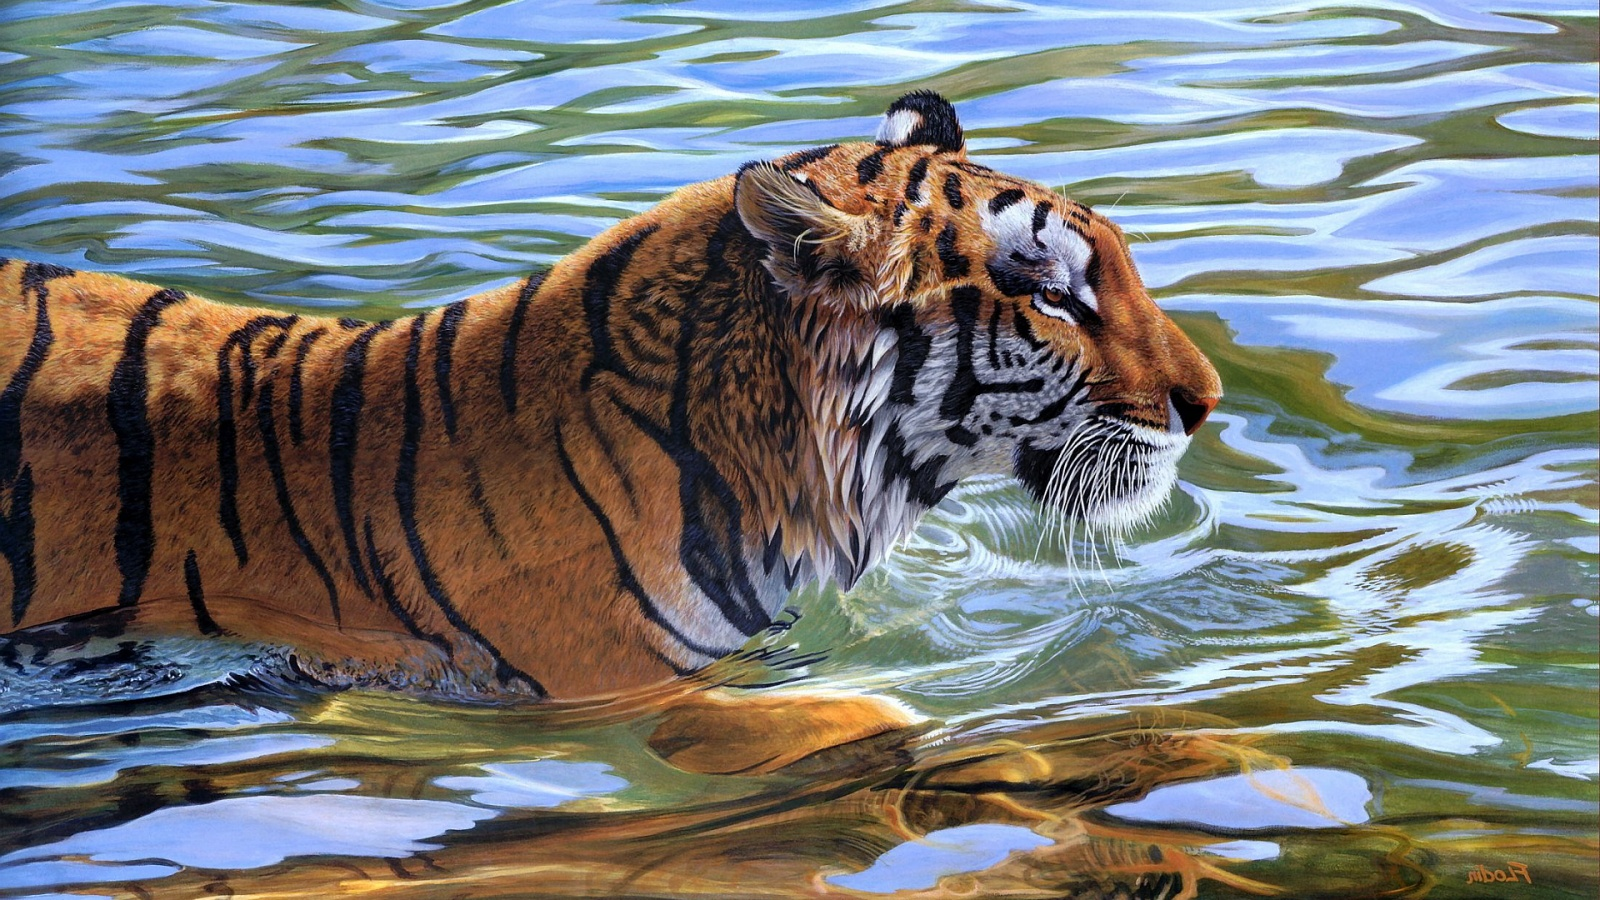 download tiger in water hd wallpaper gallery